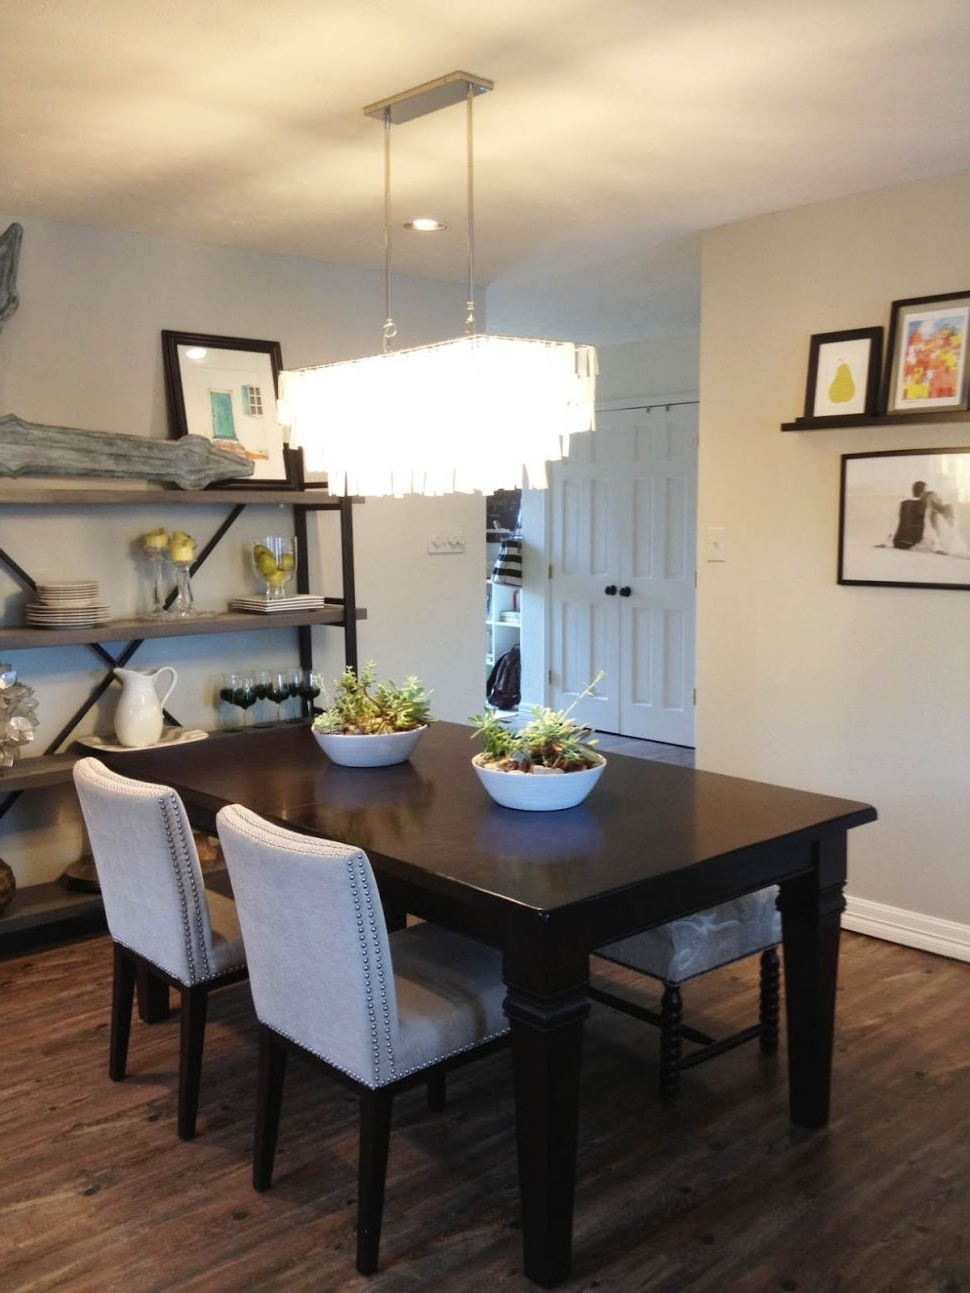 Kitchen : Winsome Dining Table Lighting Ideas 16 Crystal Chandelier with regard to Most Up-to-Date Dining Tables Lighting